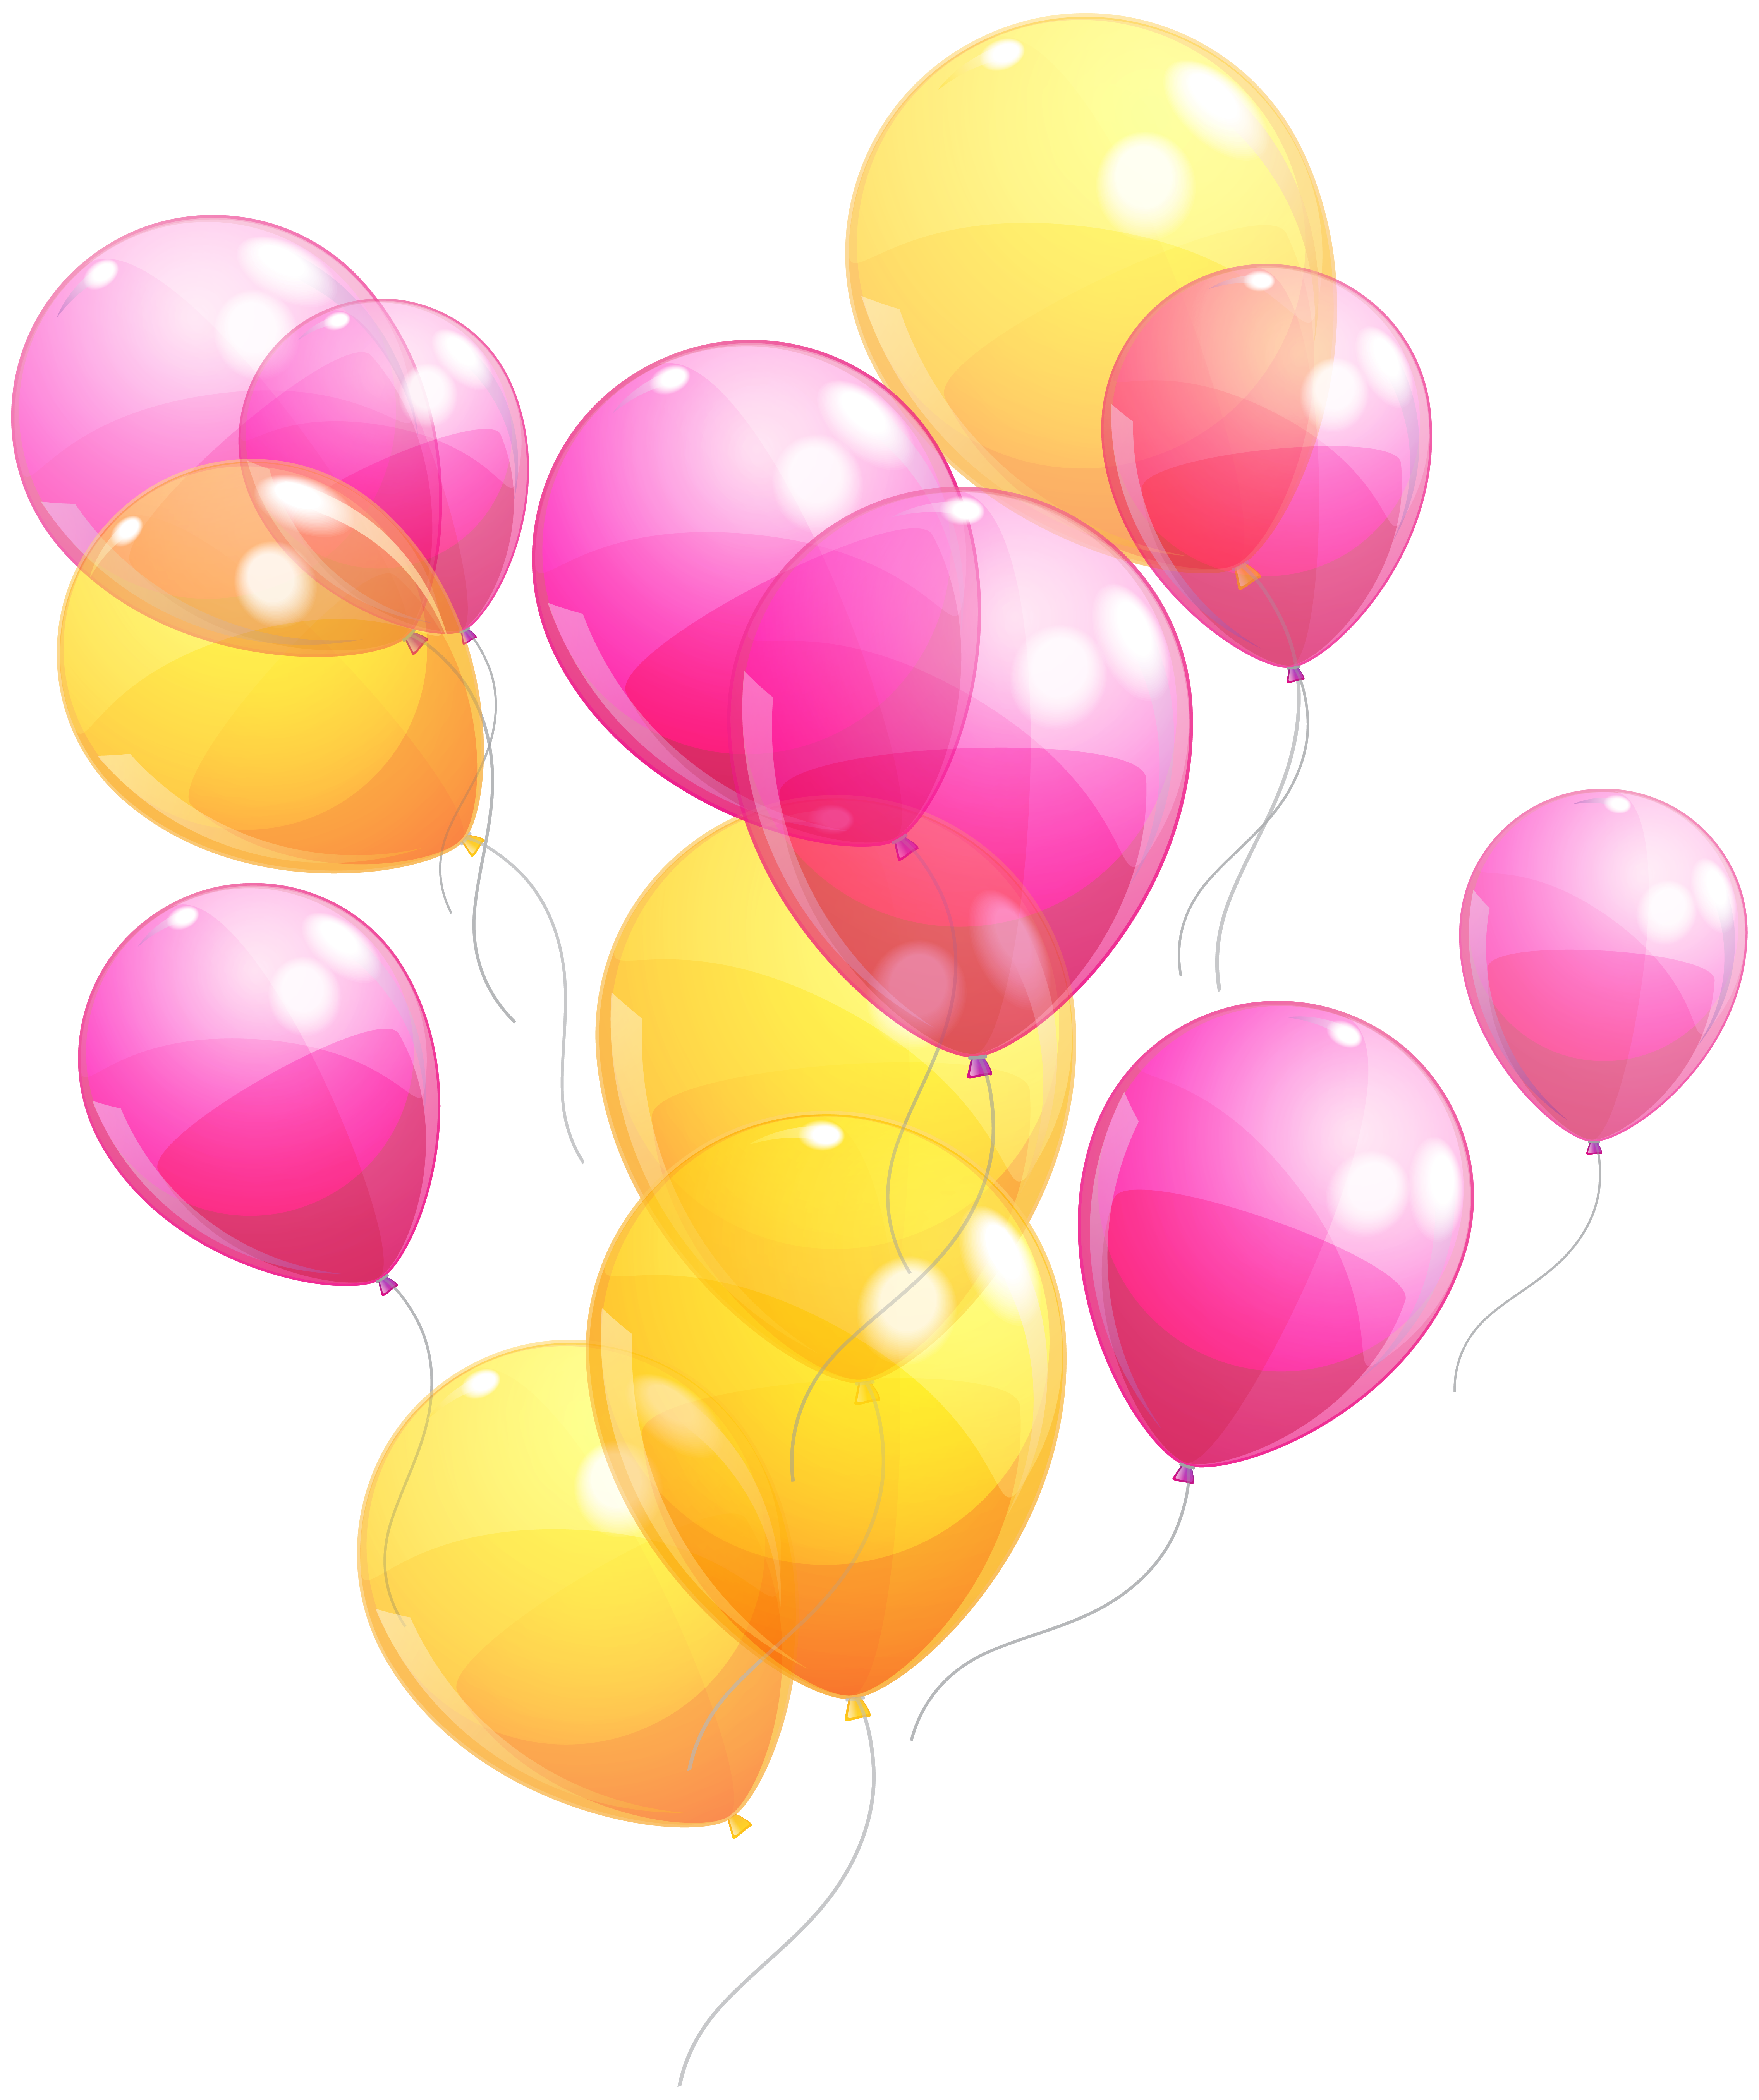 Pink balloon png transparent background. And yellow balloons bunch